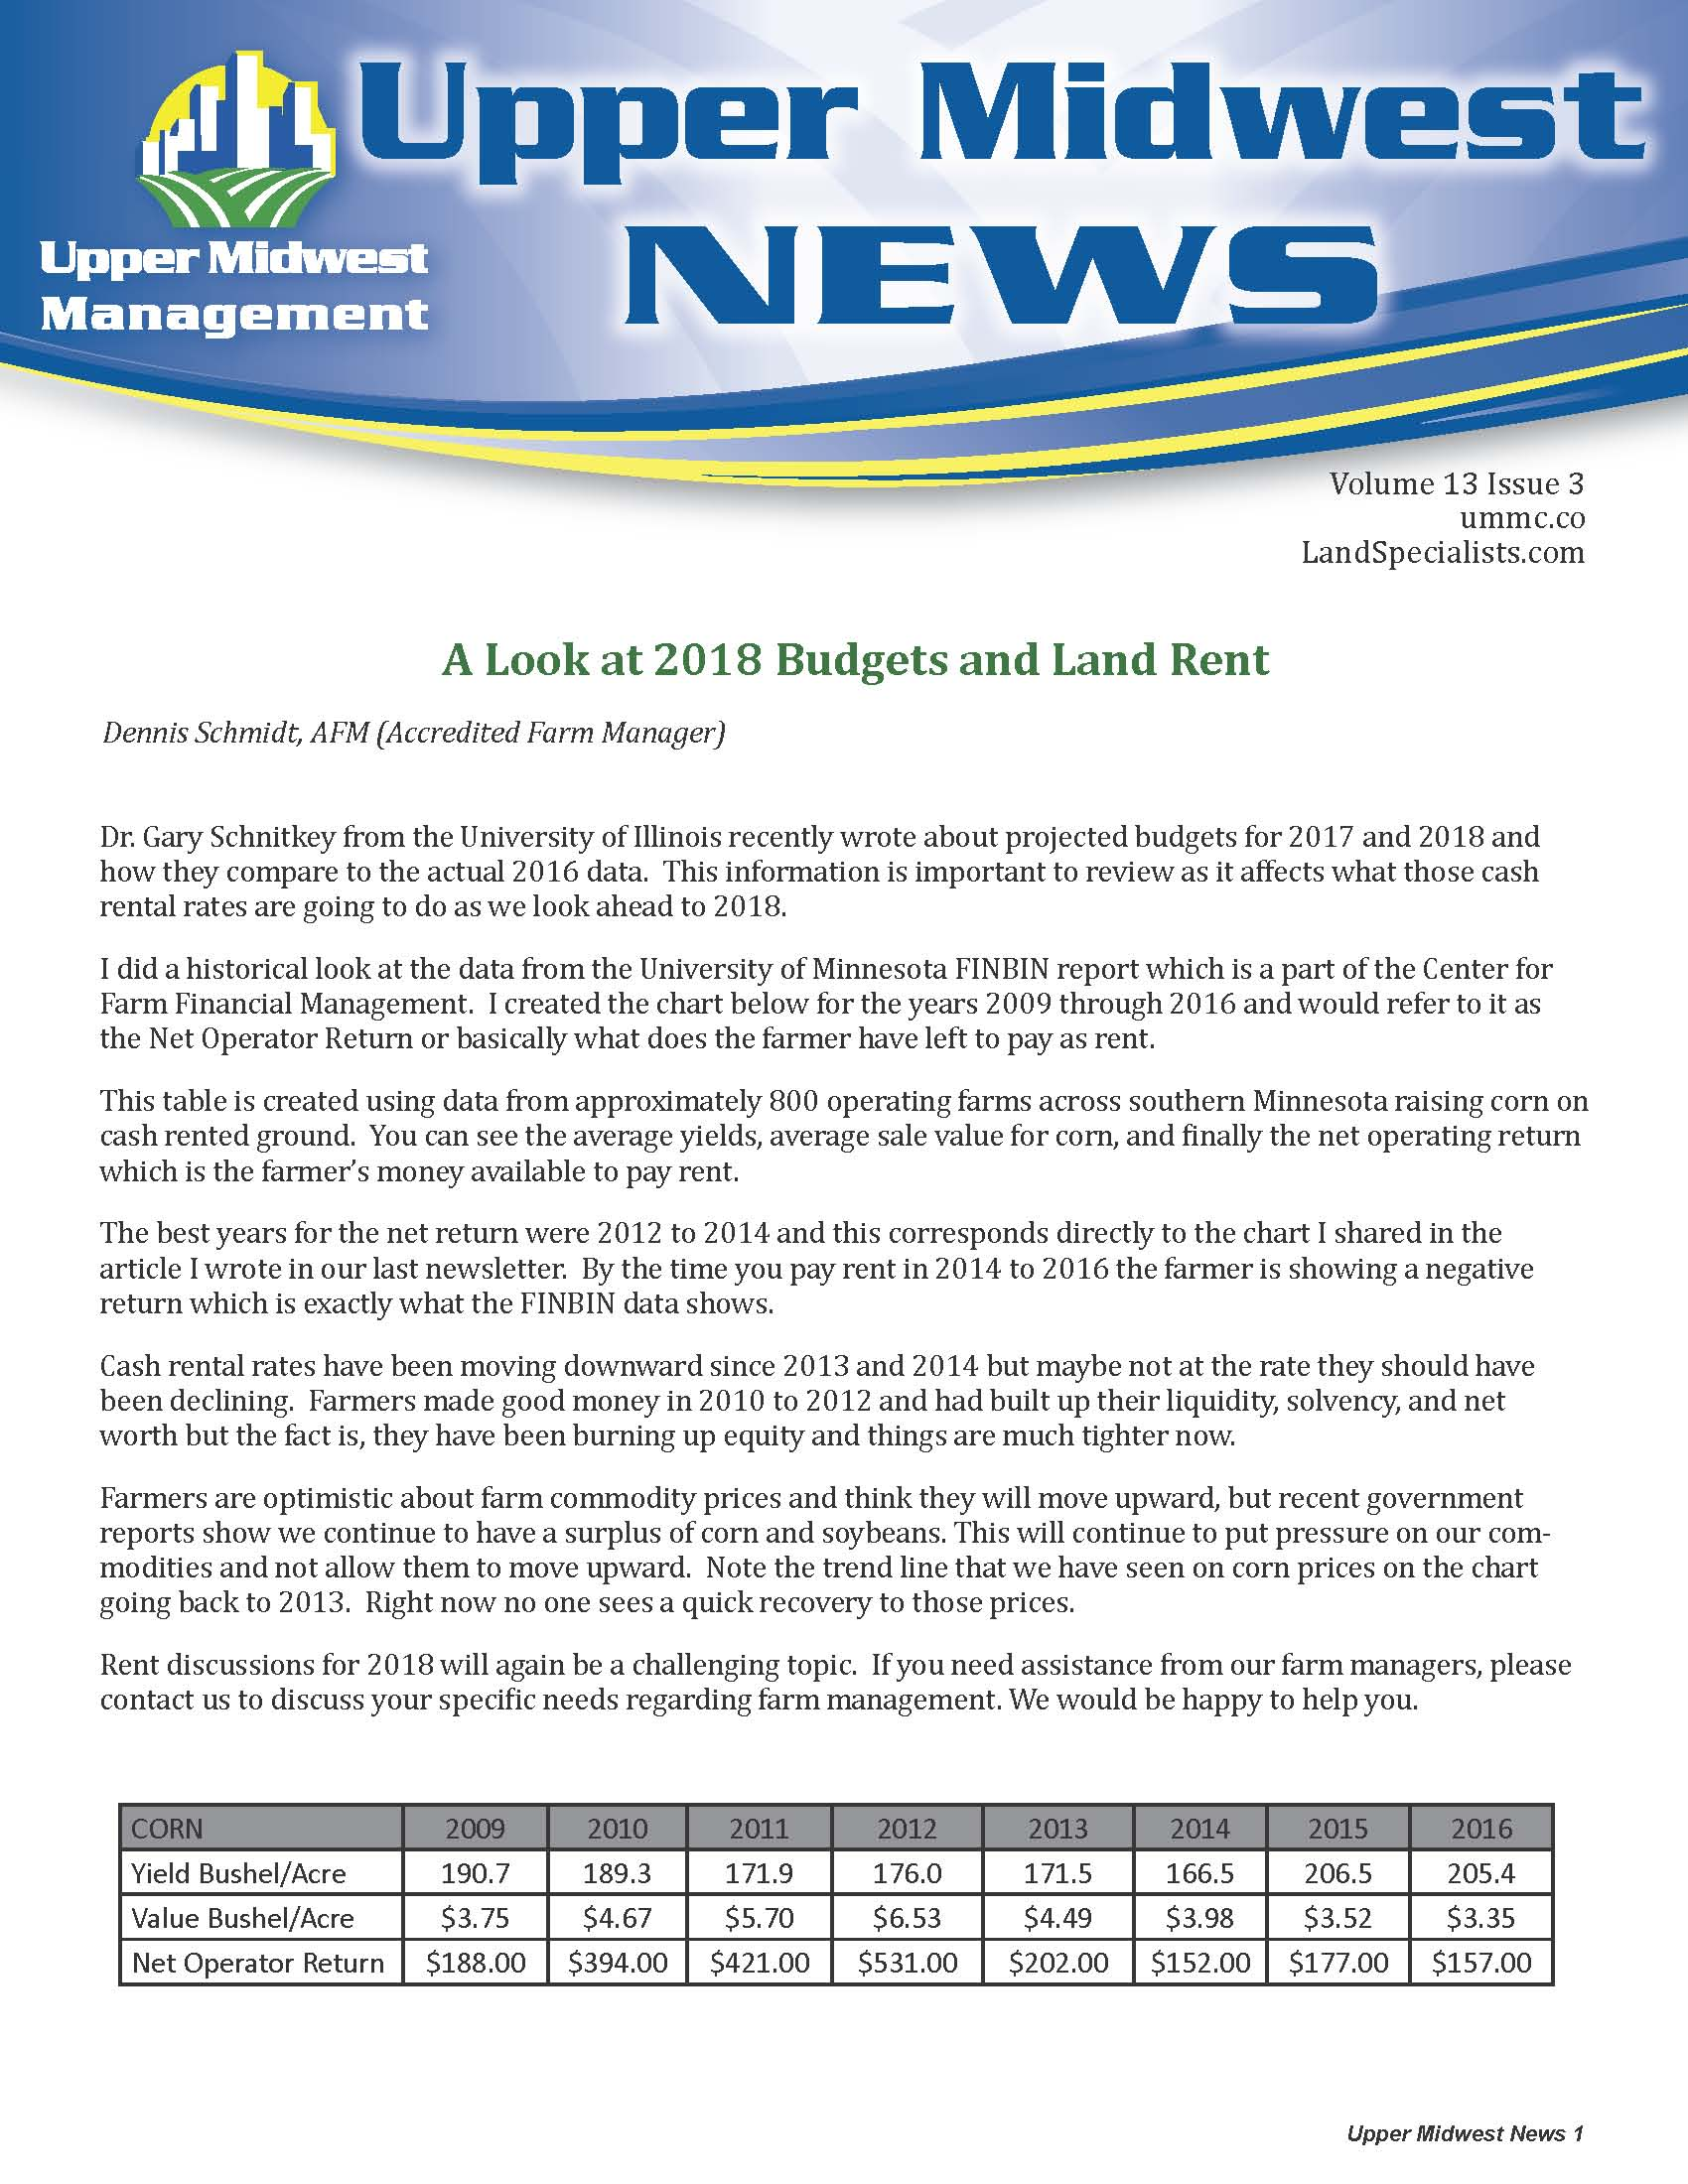 A Look at 2018 Budgets and Land Rent